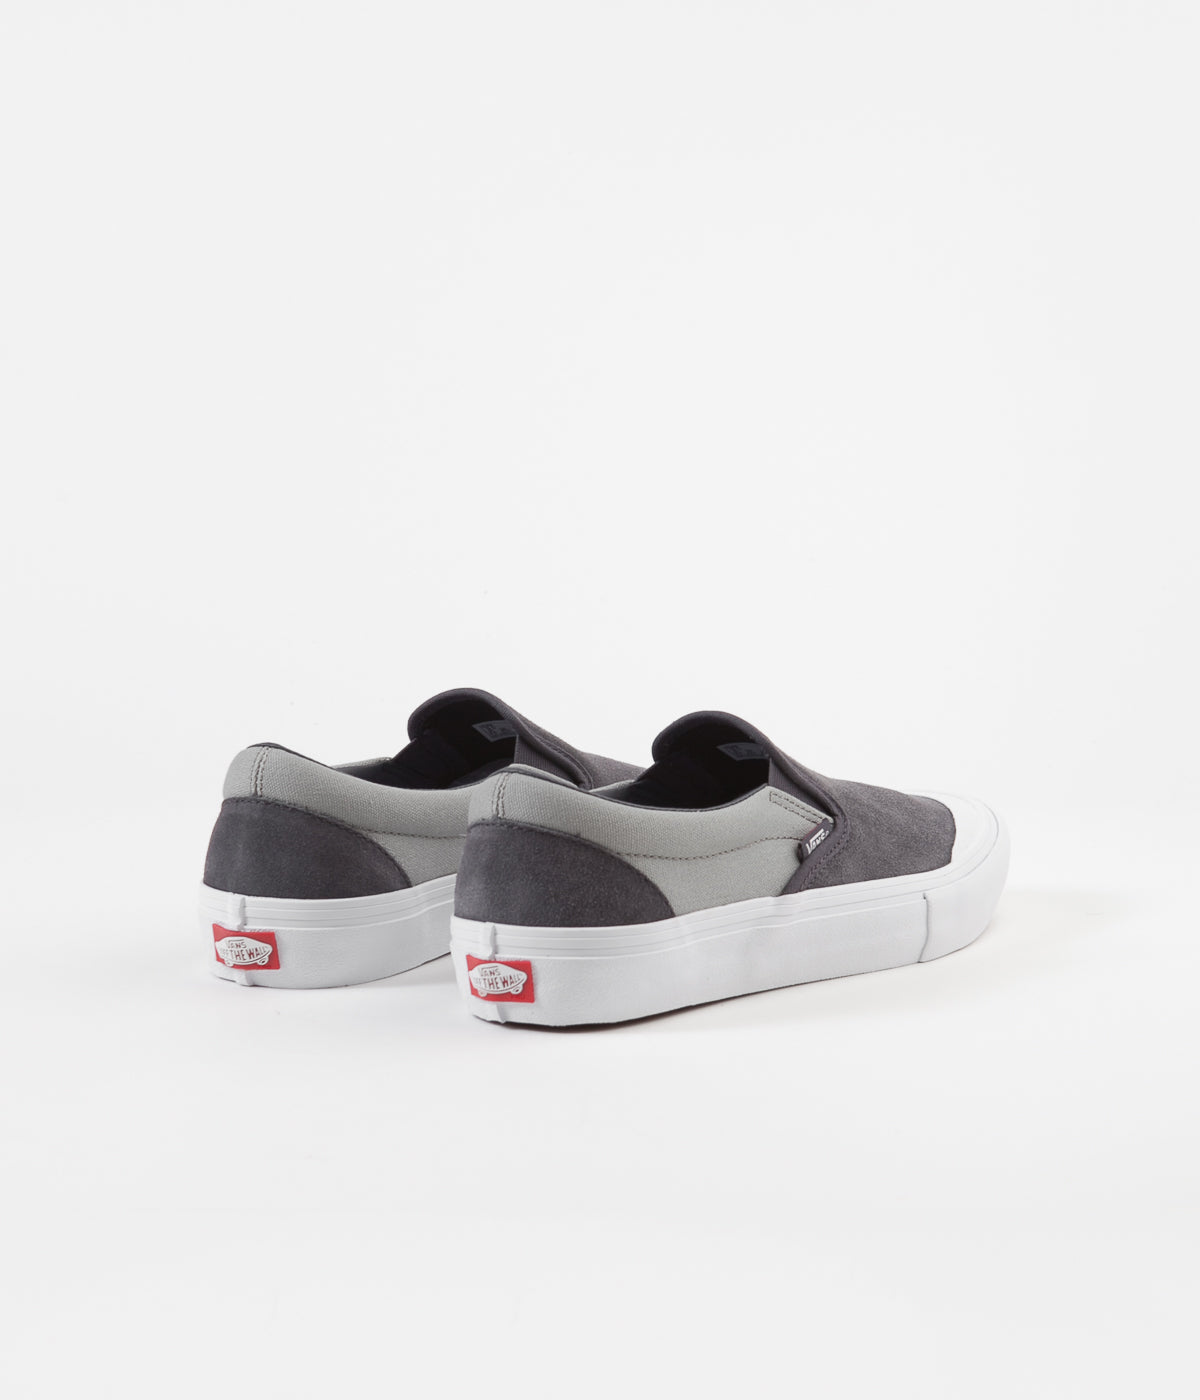 Vans Slip-On Pro Shoes - Periscope / Drizzle